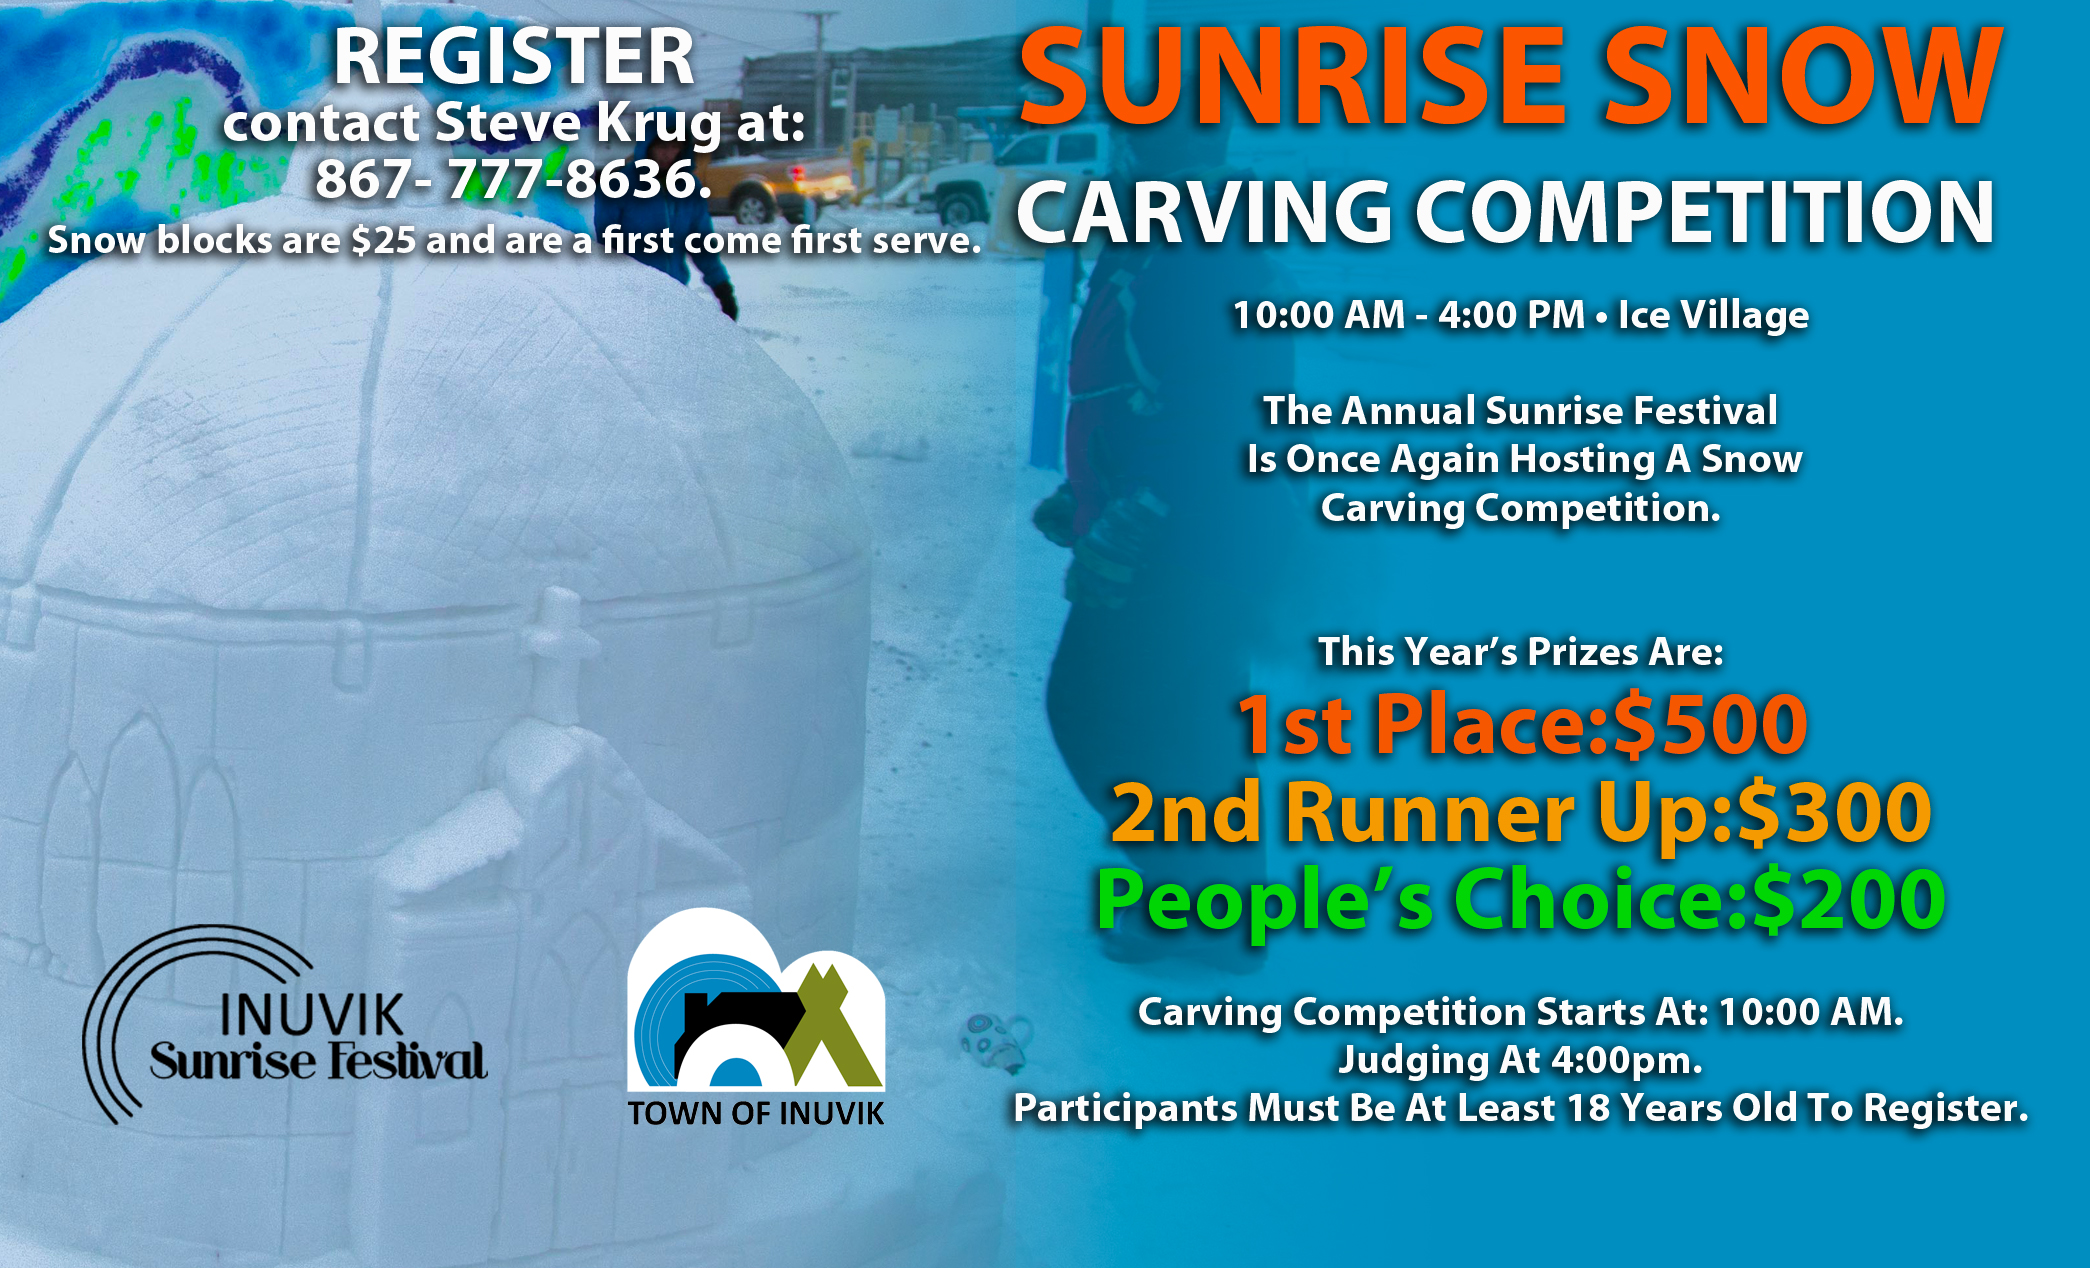 SUNRISE SNOW CARVING COMPETITION - ENTER TODAY!